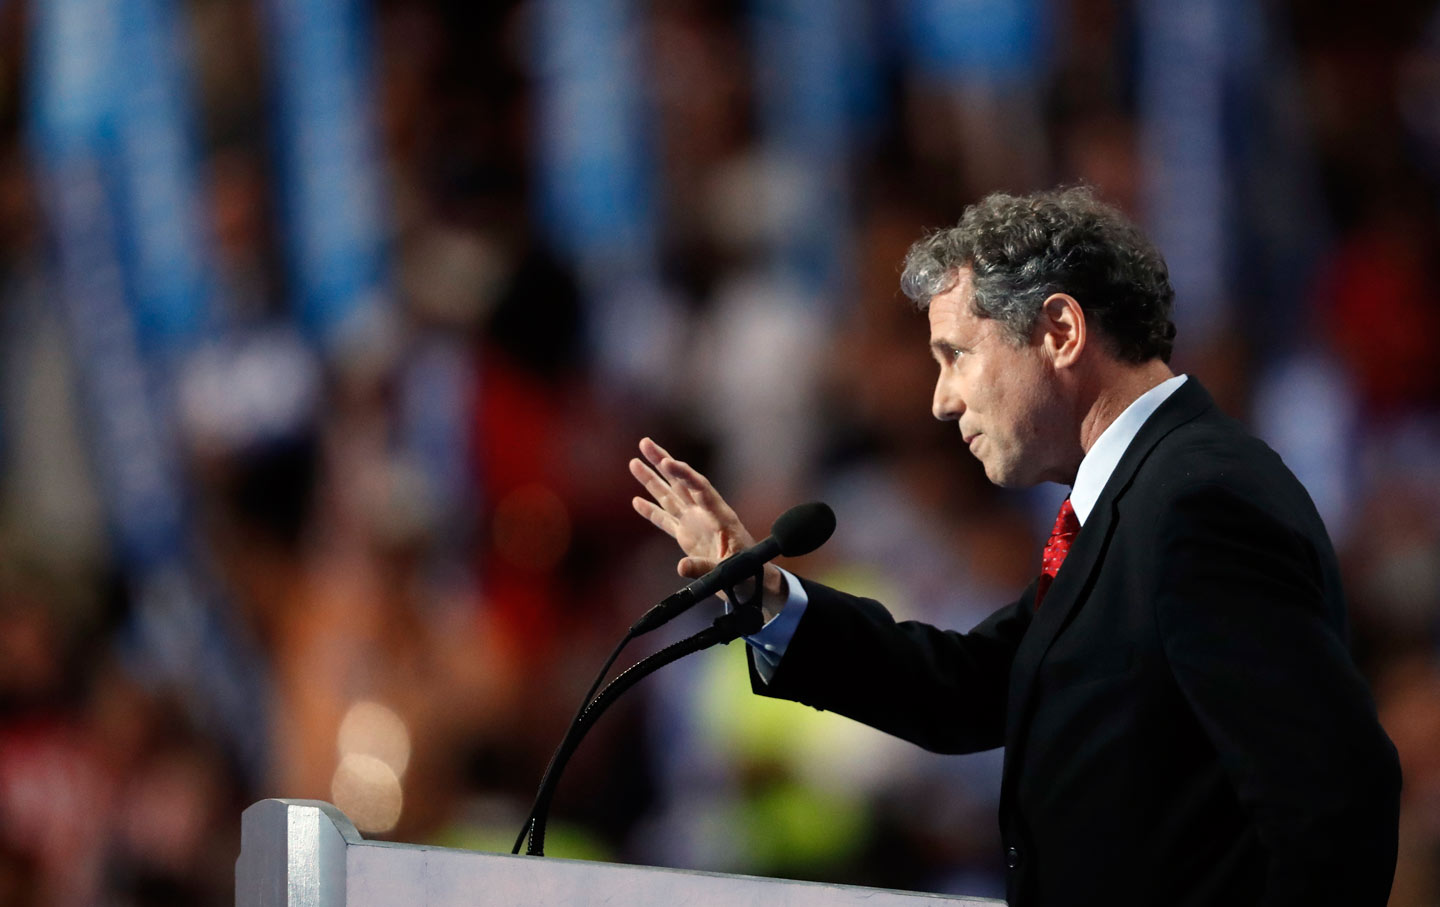 Sherrod Brown Speaks